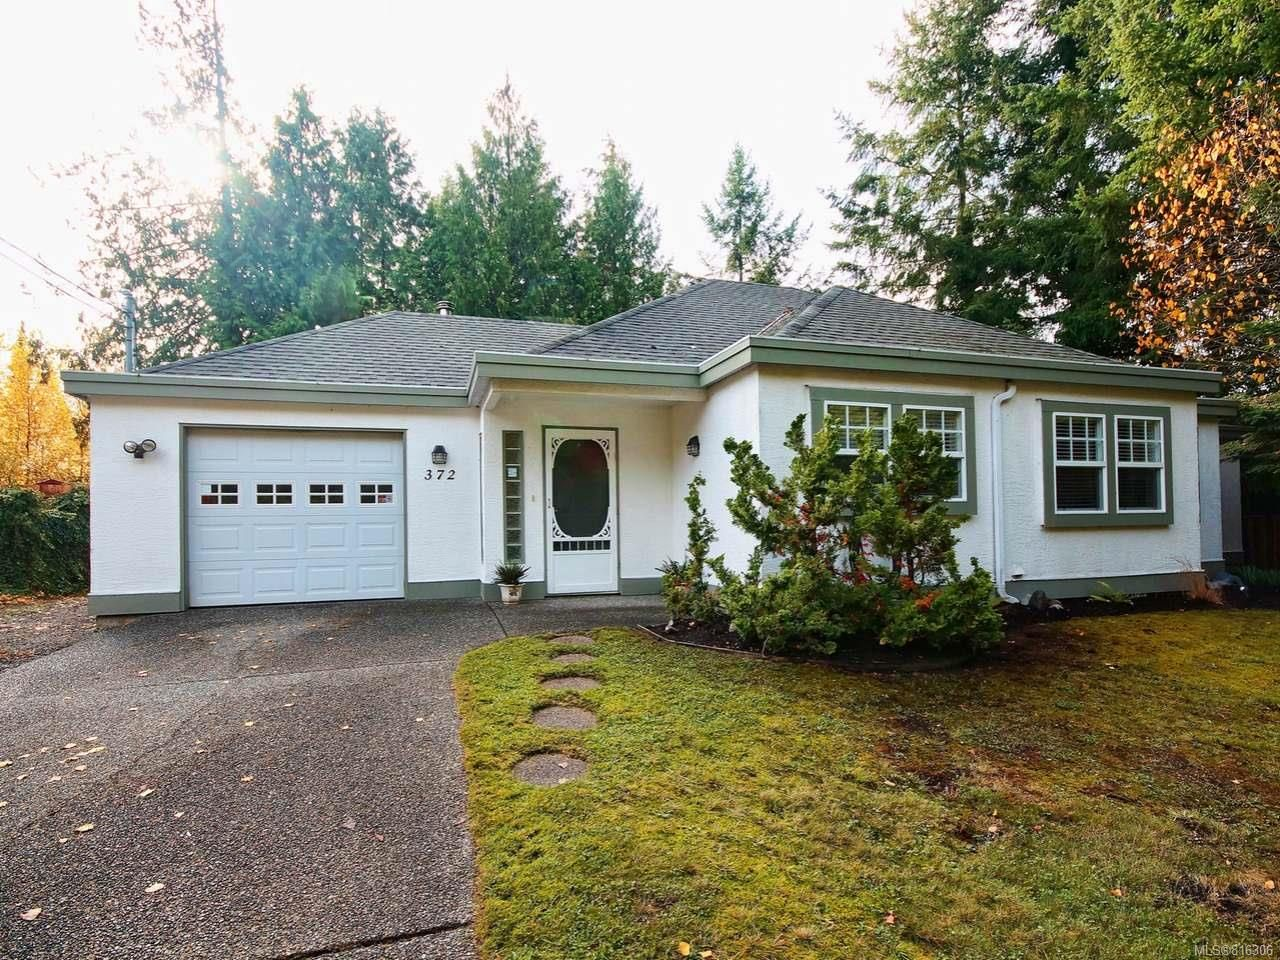 Main Photo: 372 ALDOUS ROAD in QUALICUM BEACH: PQ Qualicum Beach House for sale (Parksville/Qualicum)  : MLS®# 816306